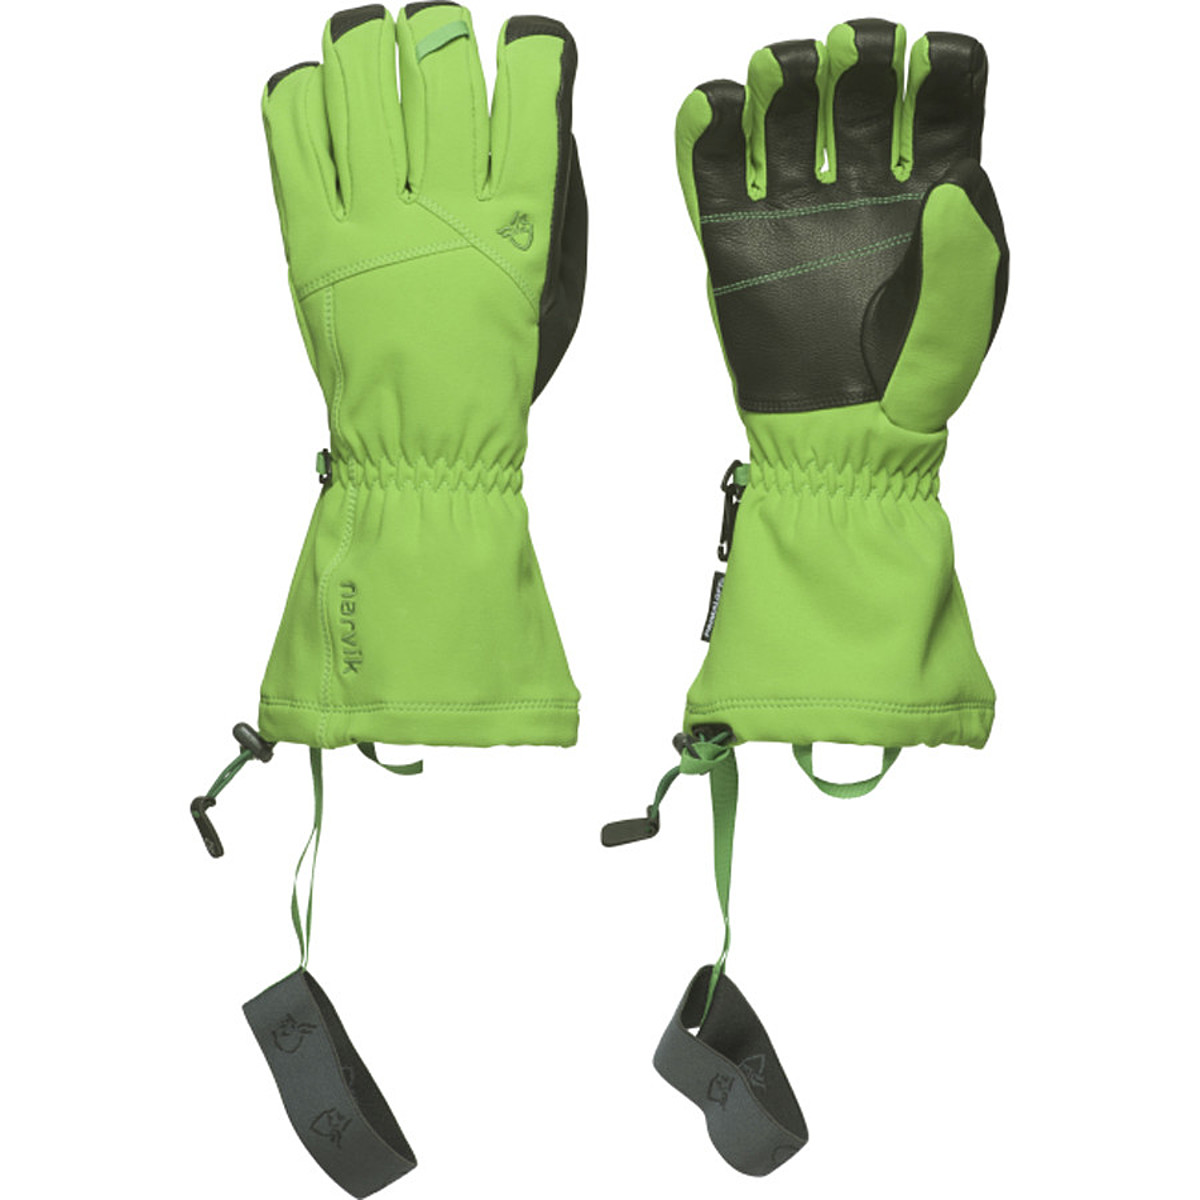 Norrona Narvik Dri1 Insulated Long Gloves